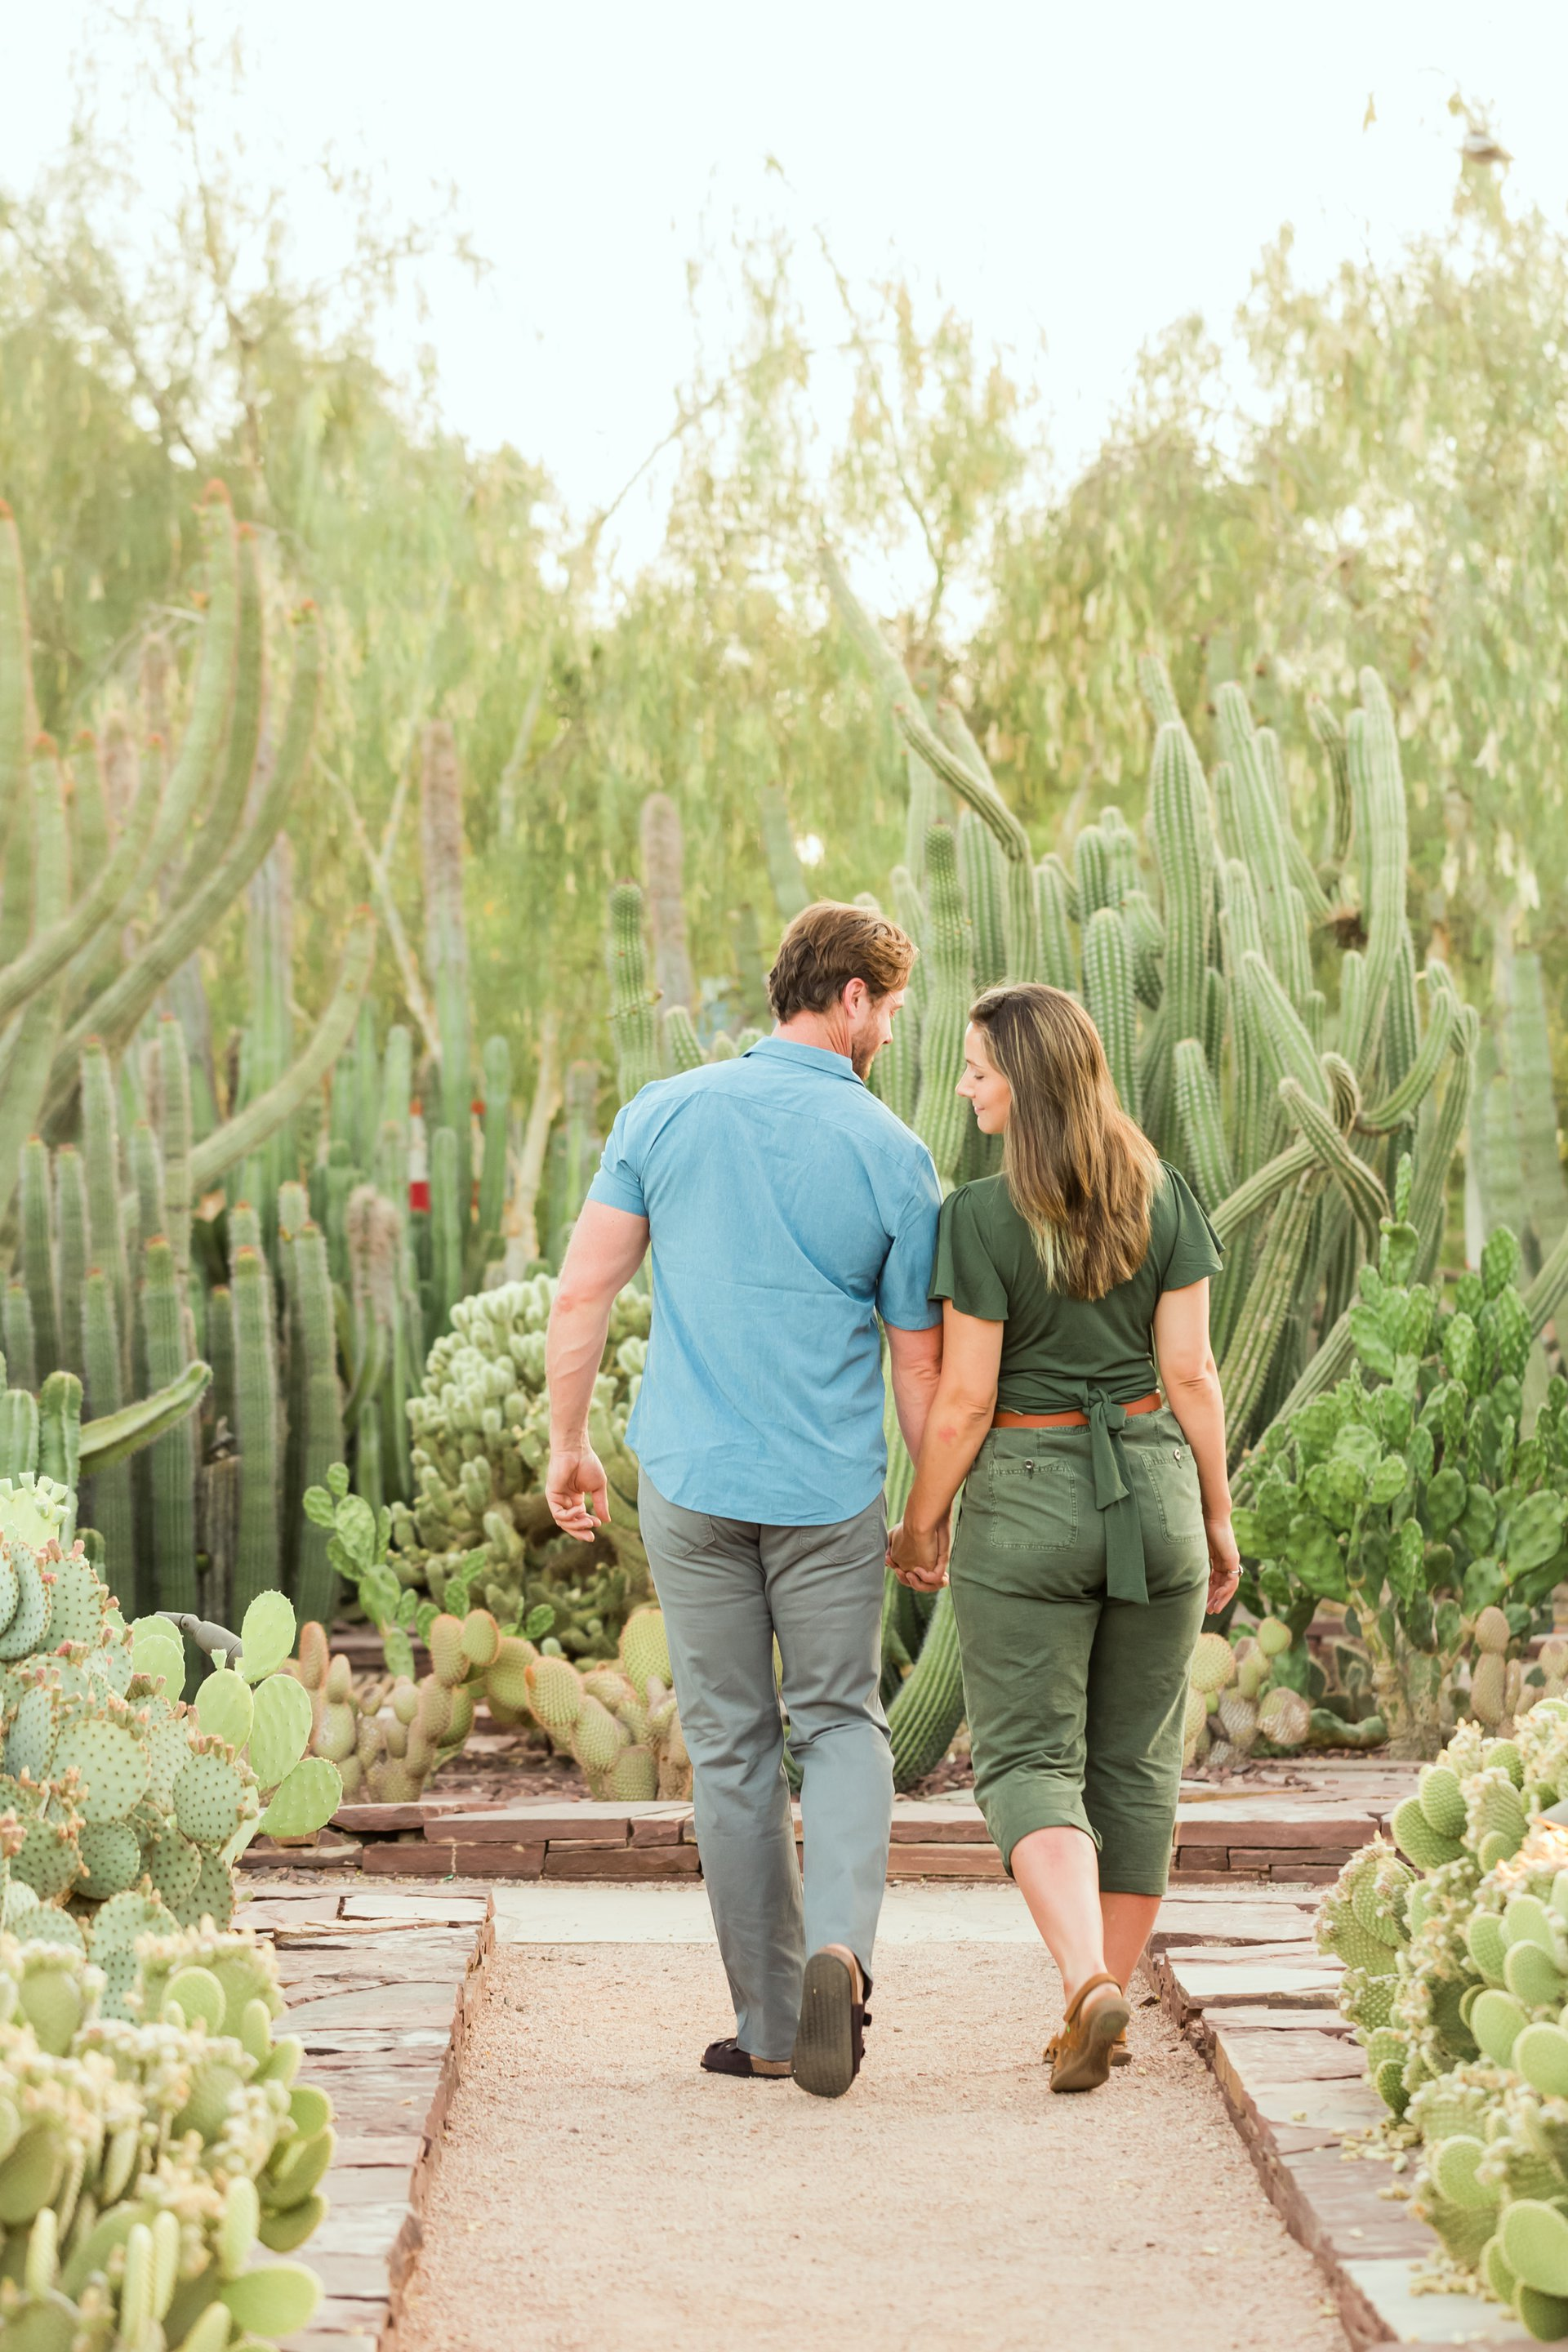 Scottsdale-United States-travel-story-Flytographer-8